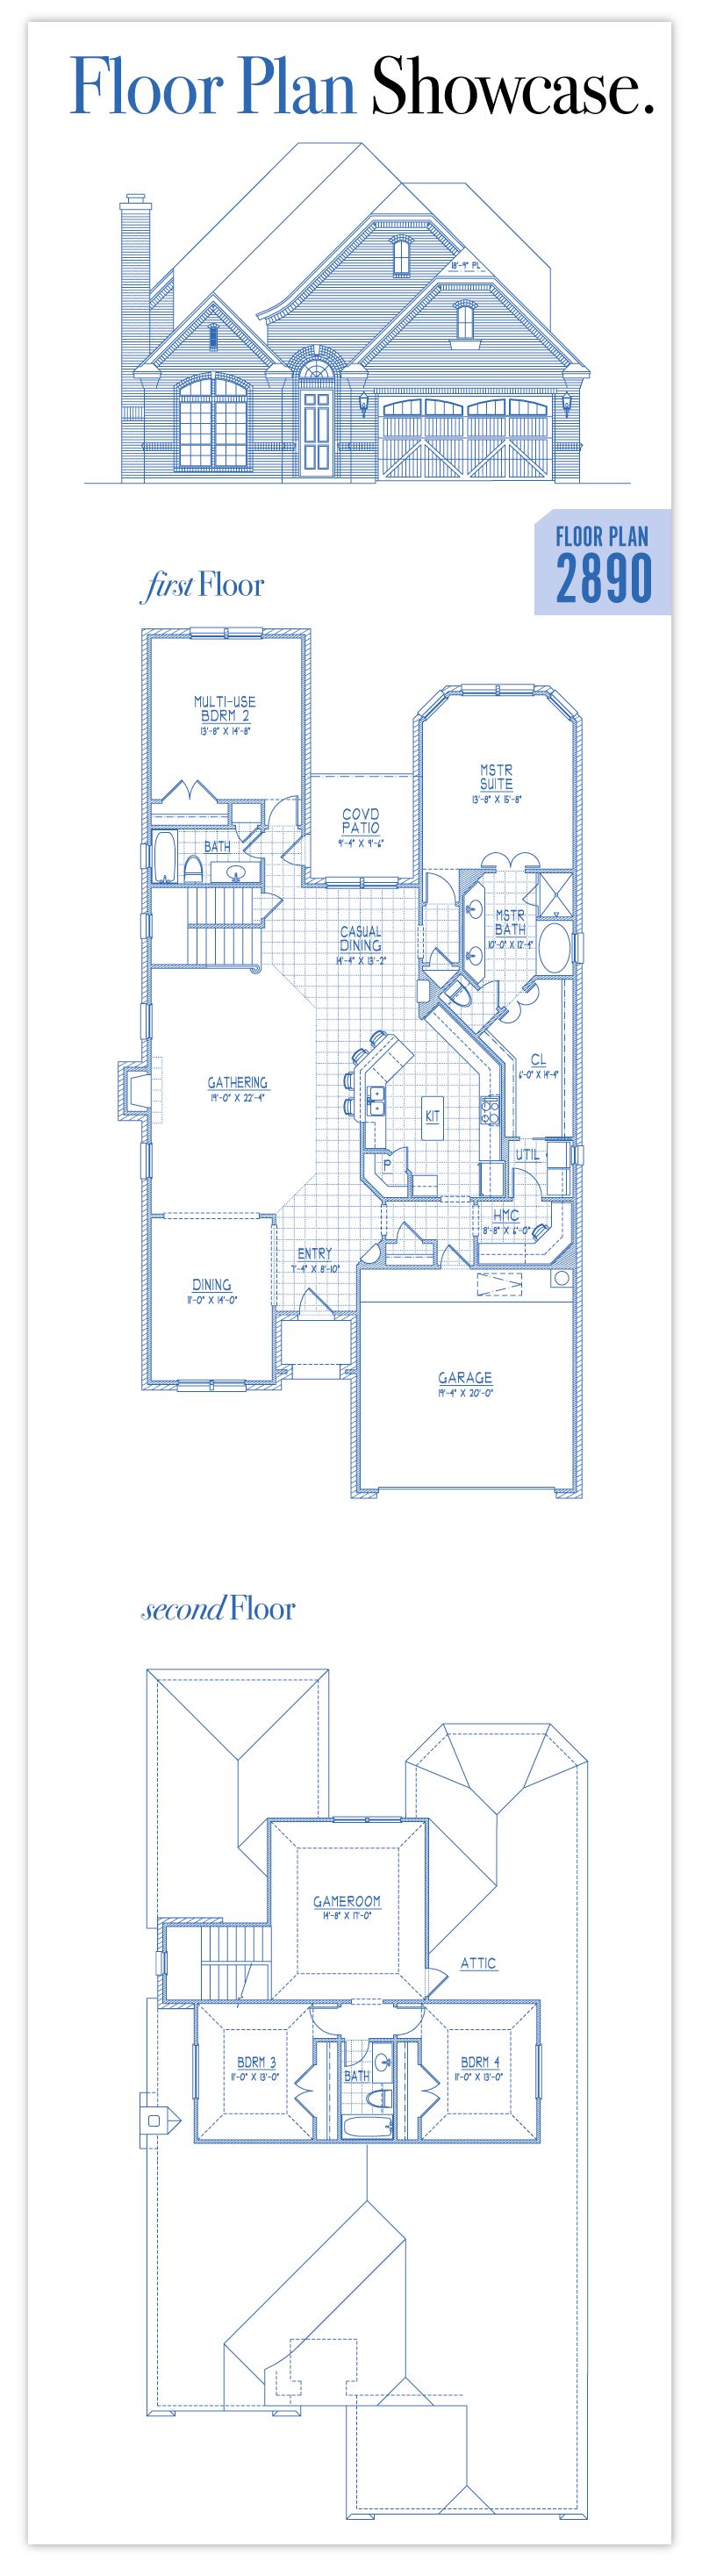 floorplanshowcase2890